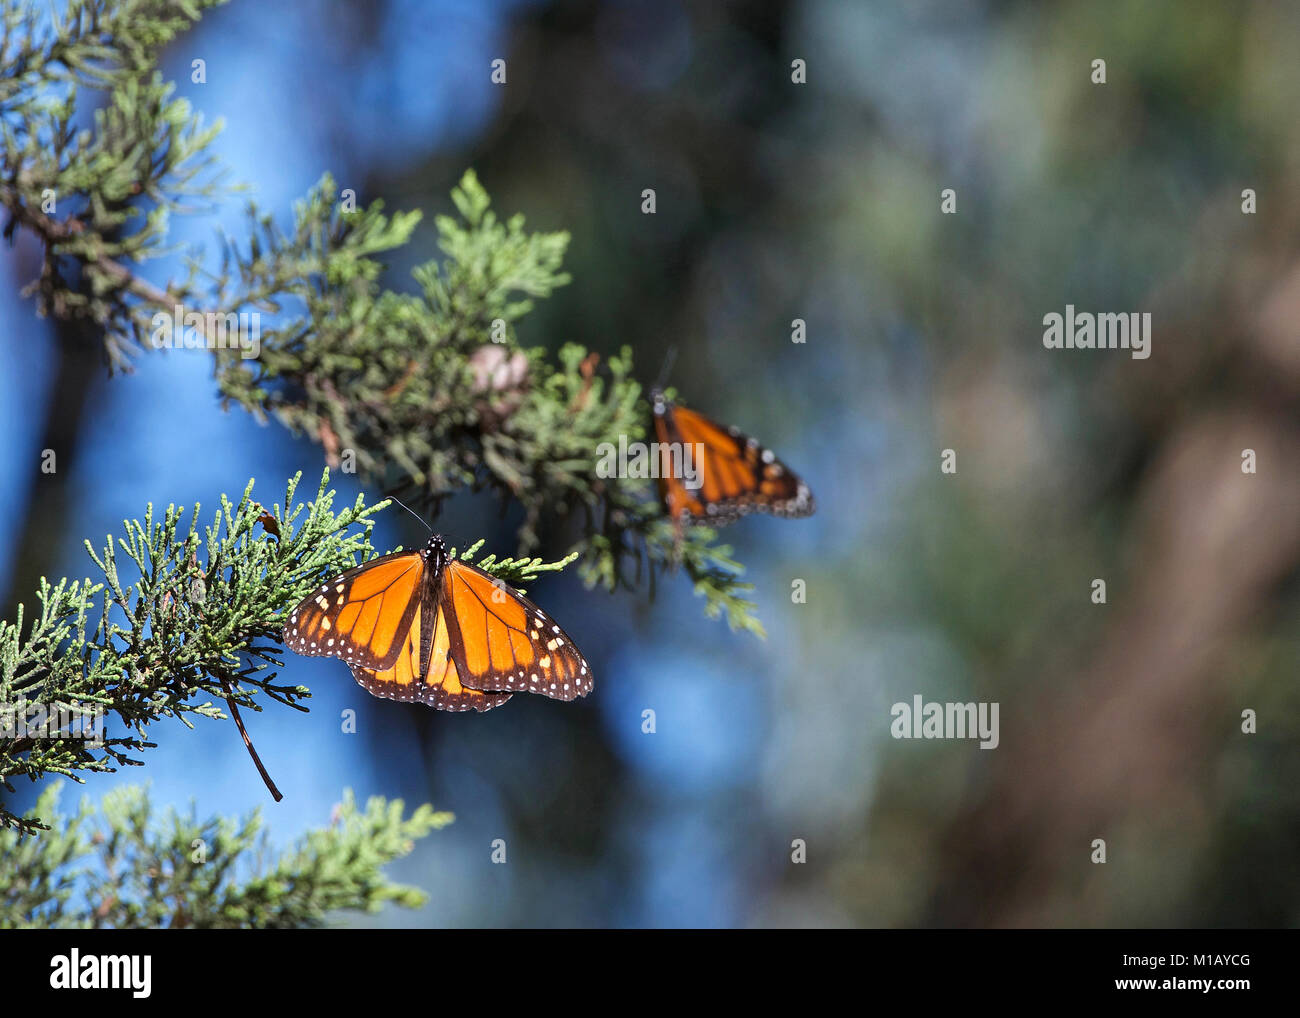 Two Monarch Butterflies in a pine tree. The monarch butterfly may be the most familiar North American butterfly - Stock Image